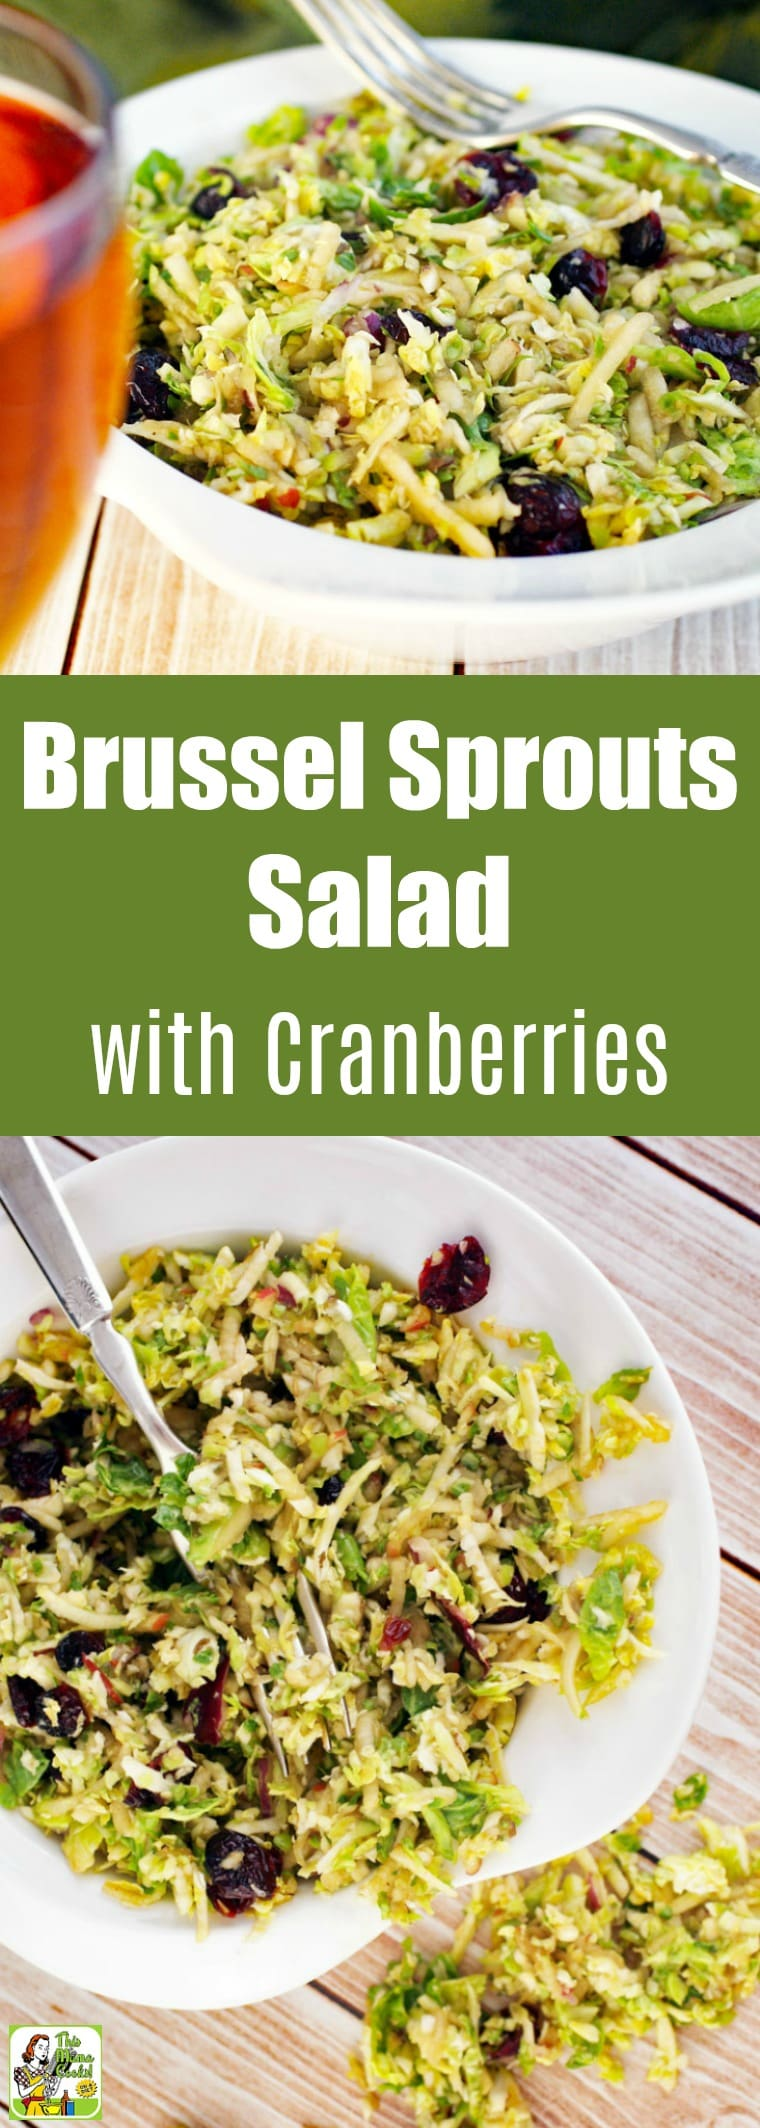 Brussel Sprouts Salad with Cranberries Recipe